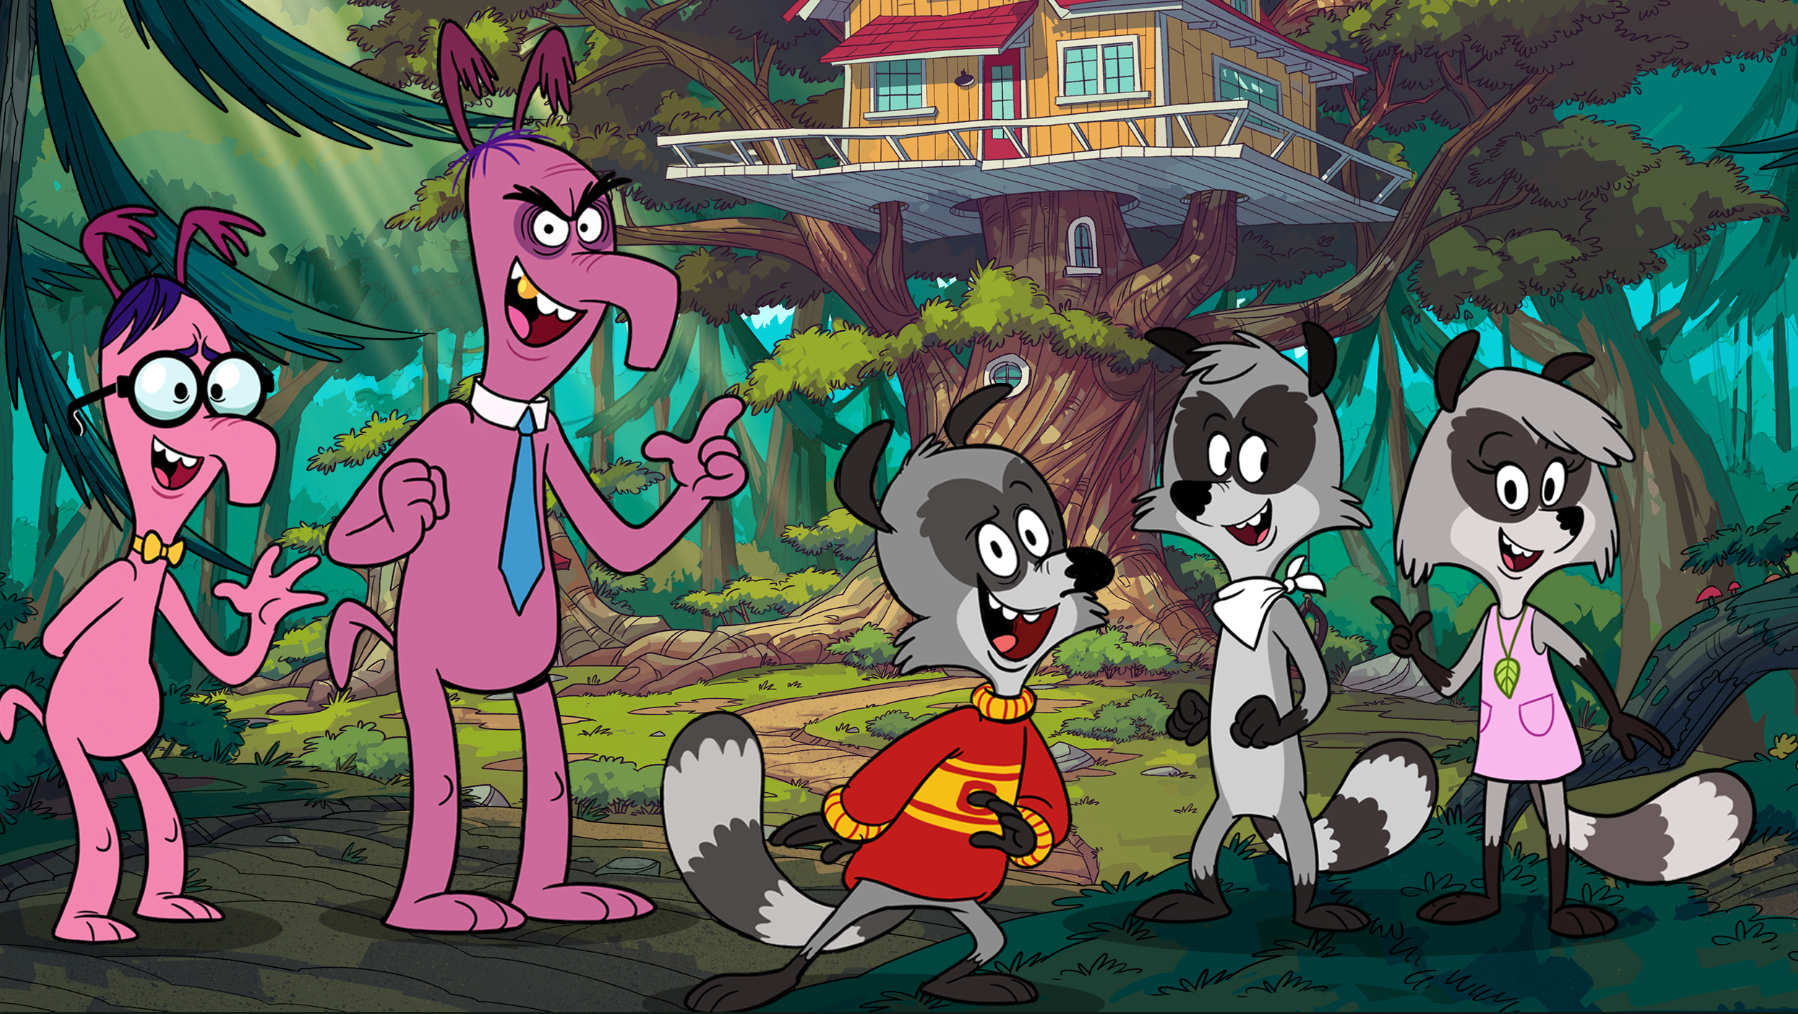 Here's your first look at The Raccoons reboot!